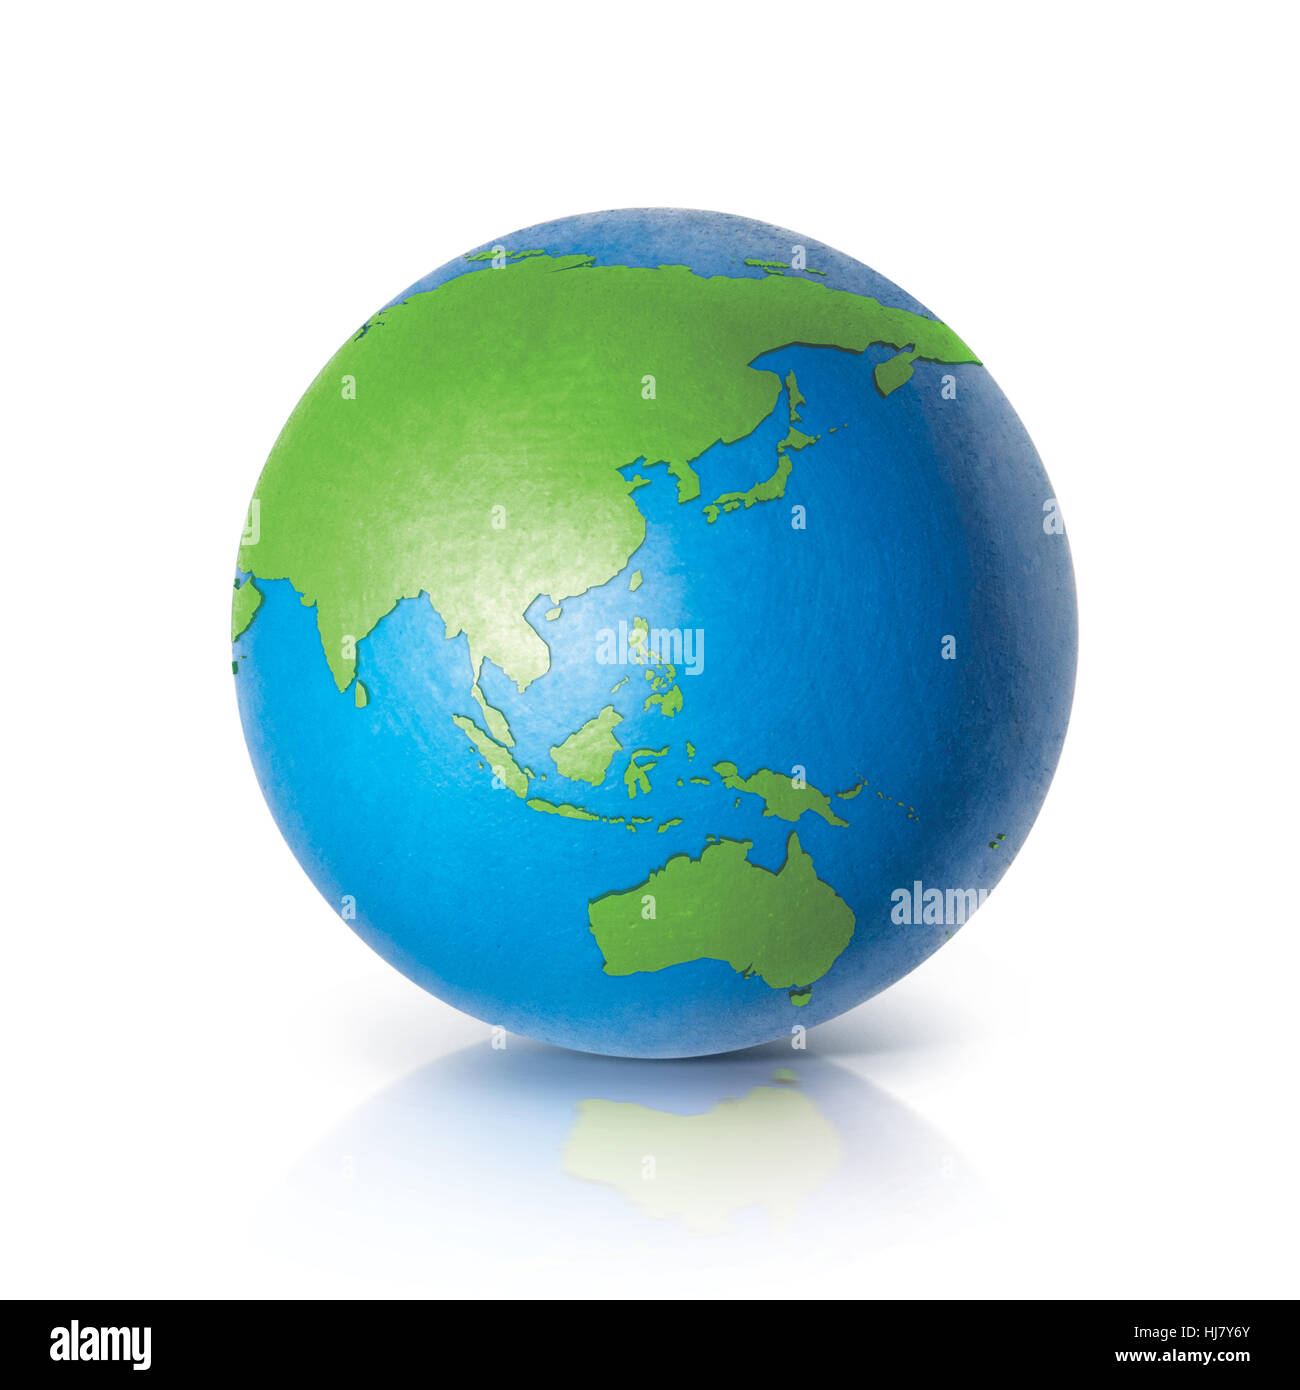 Color globe 3d illustration asia australia map on white background color globe 3d illustration asia australia map on white background gumiabroncs Image collections